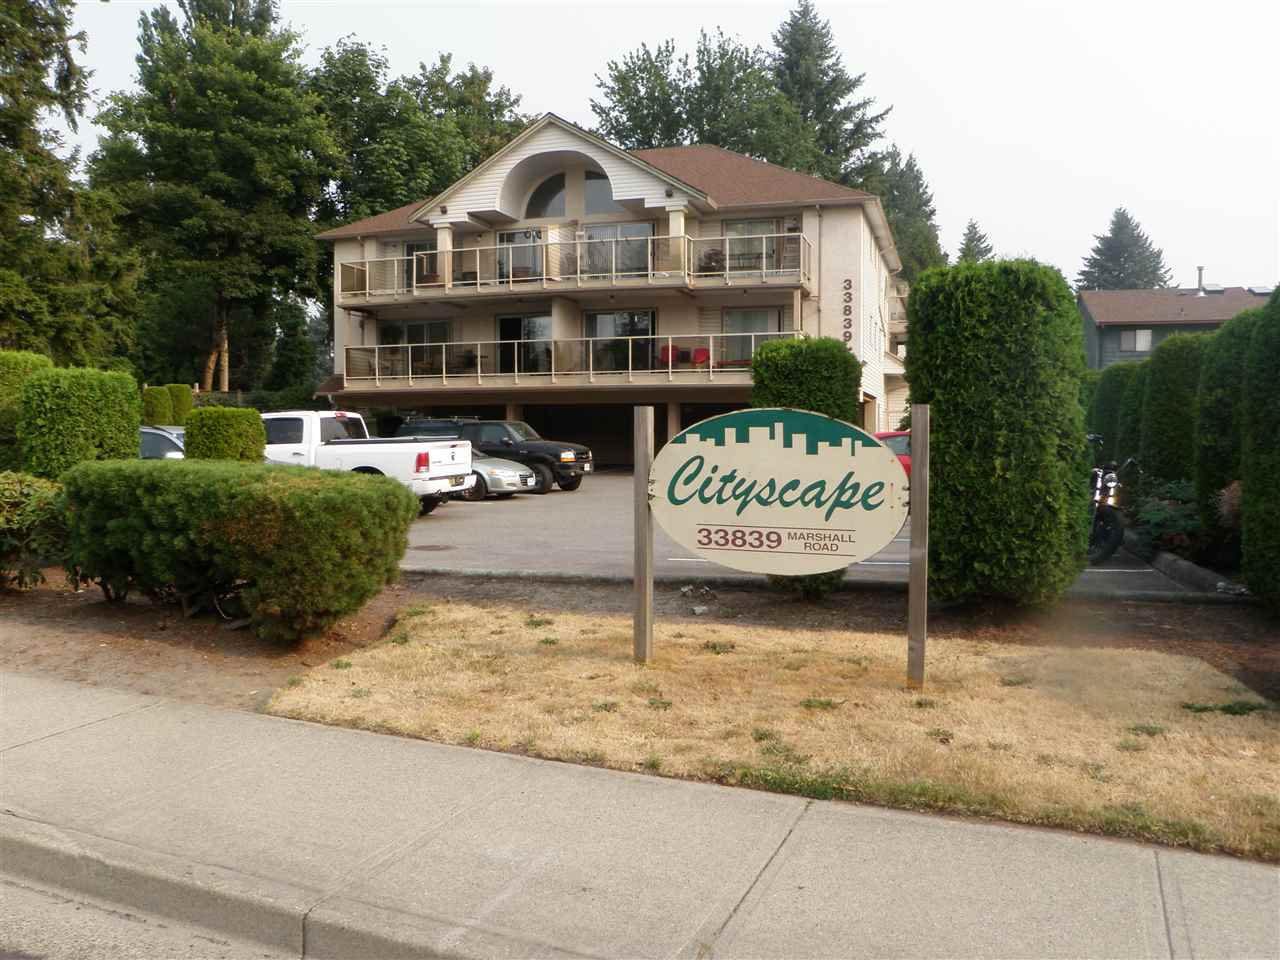 """Main Photo: 301 33839 MARSHALL Road in Abbotsford: Central Abbotsford Condo for sale in """"City Scape"""" : MLS®# R2193790"""